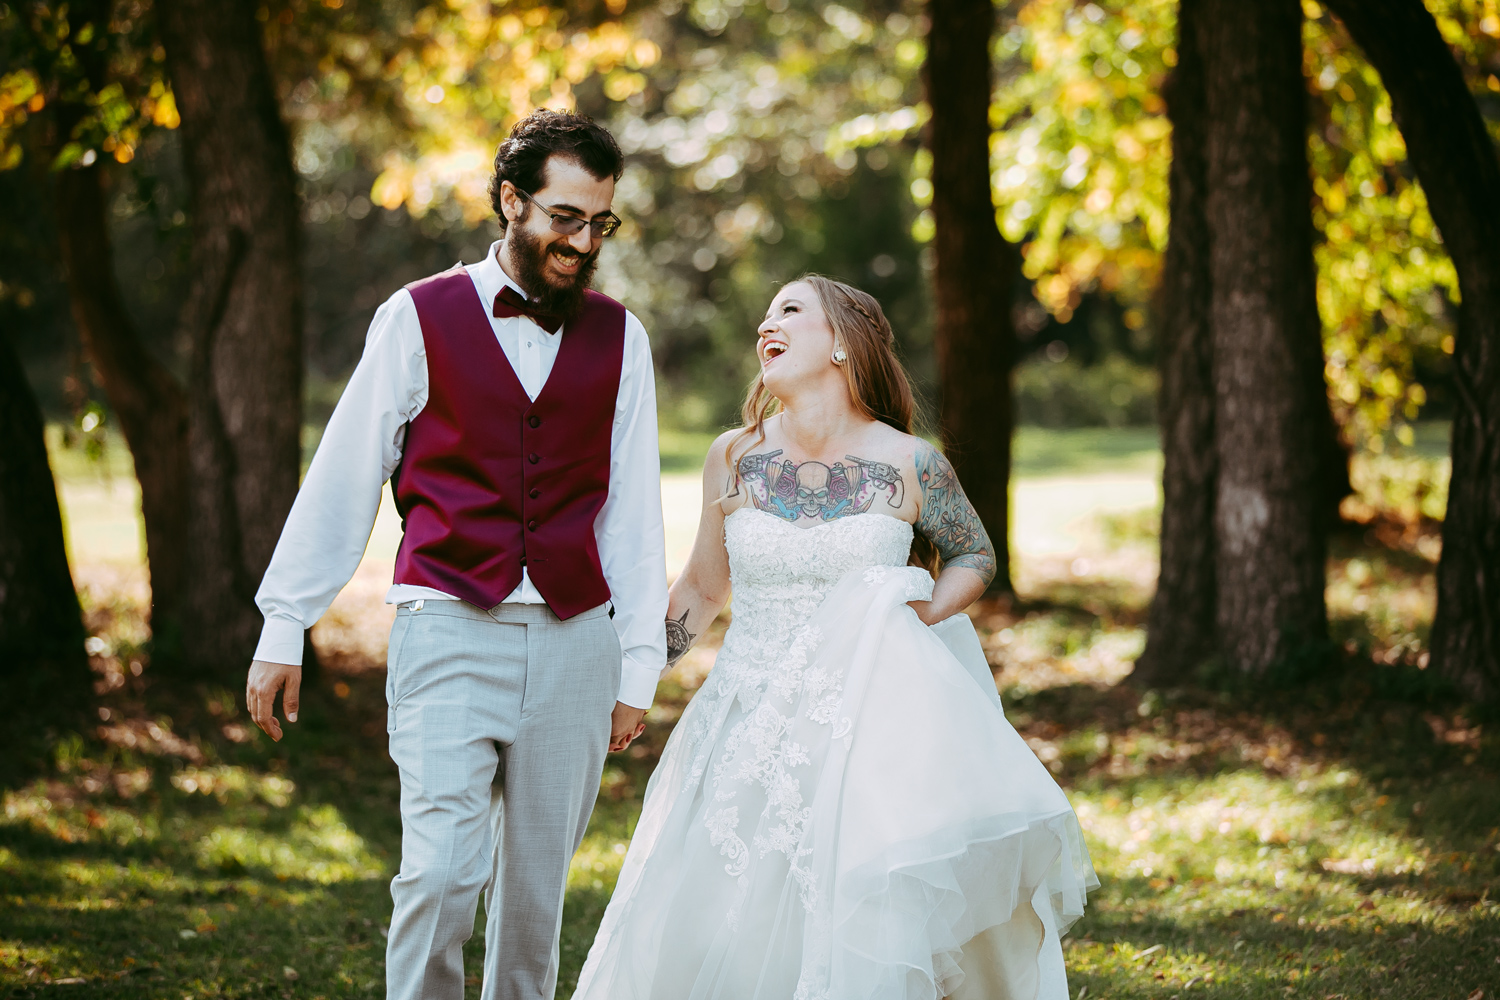 Bride and groom walking and laughing together in an open park in the fall in Oklahoma by Amanda Lynn.